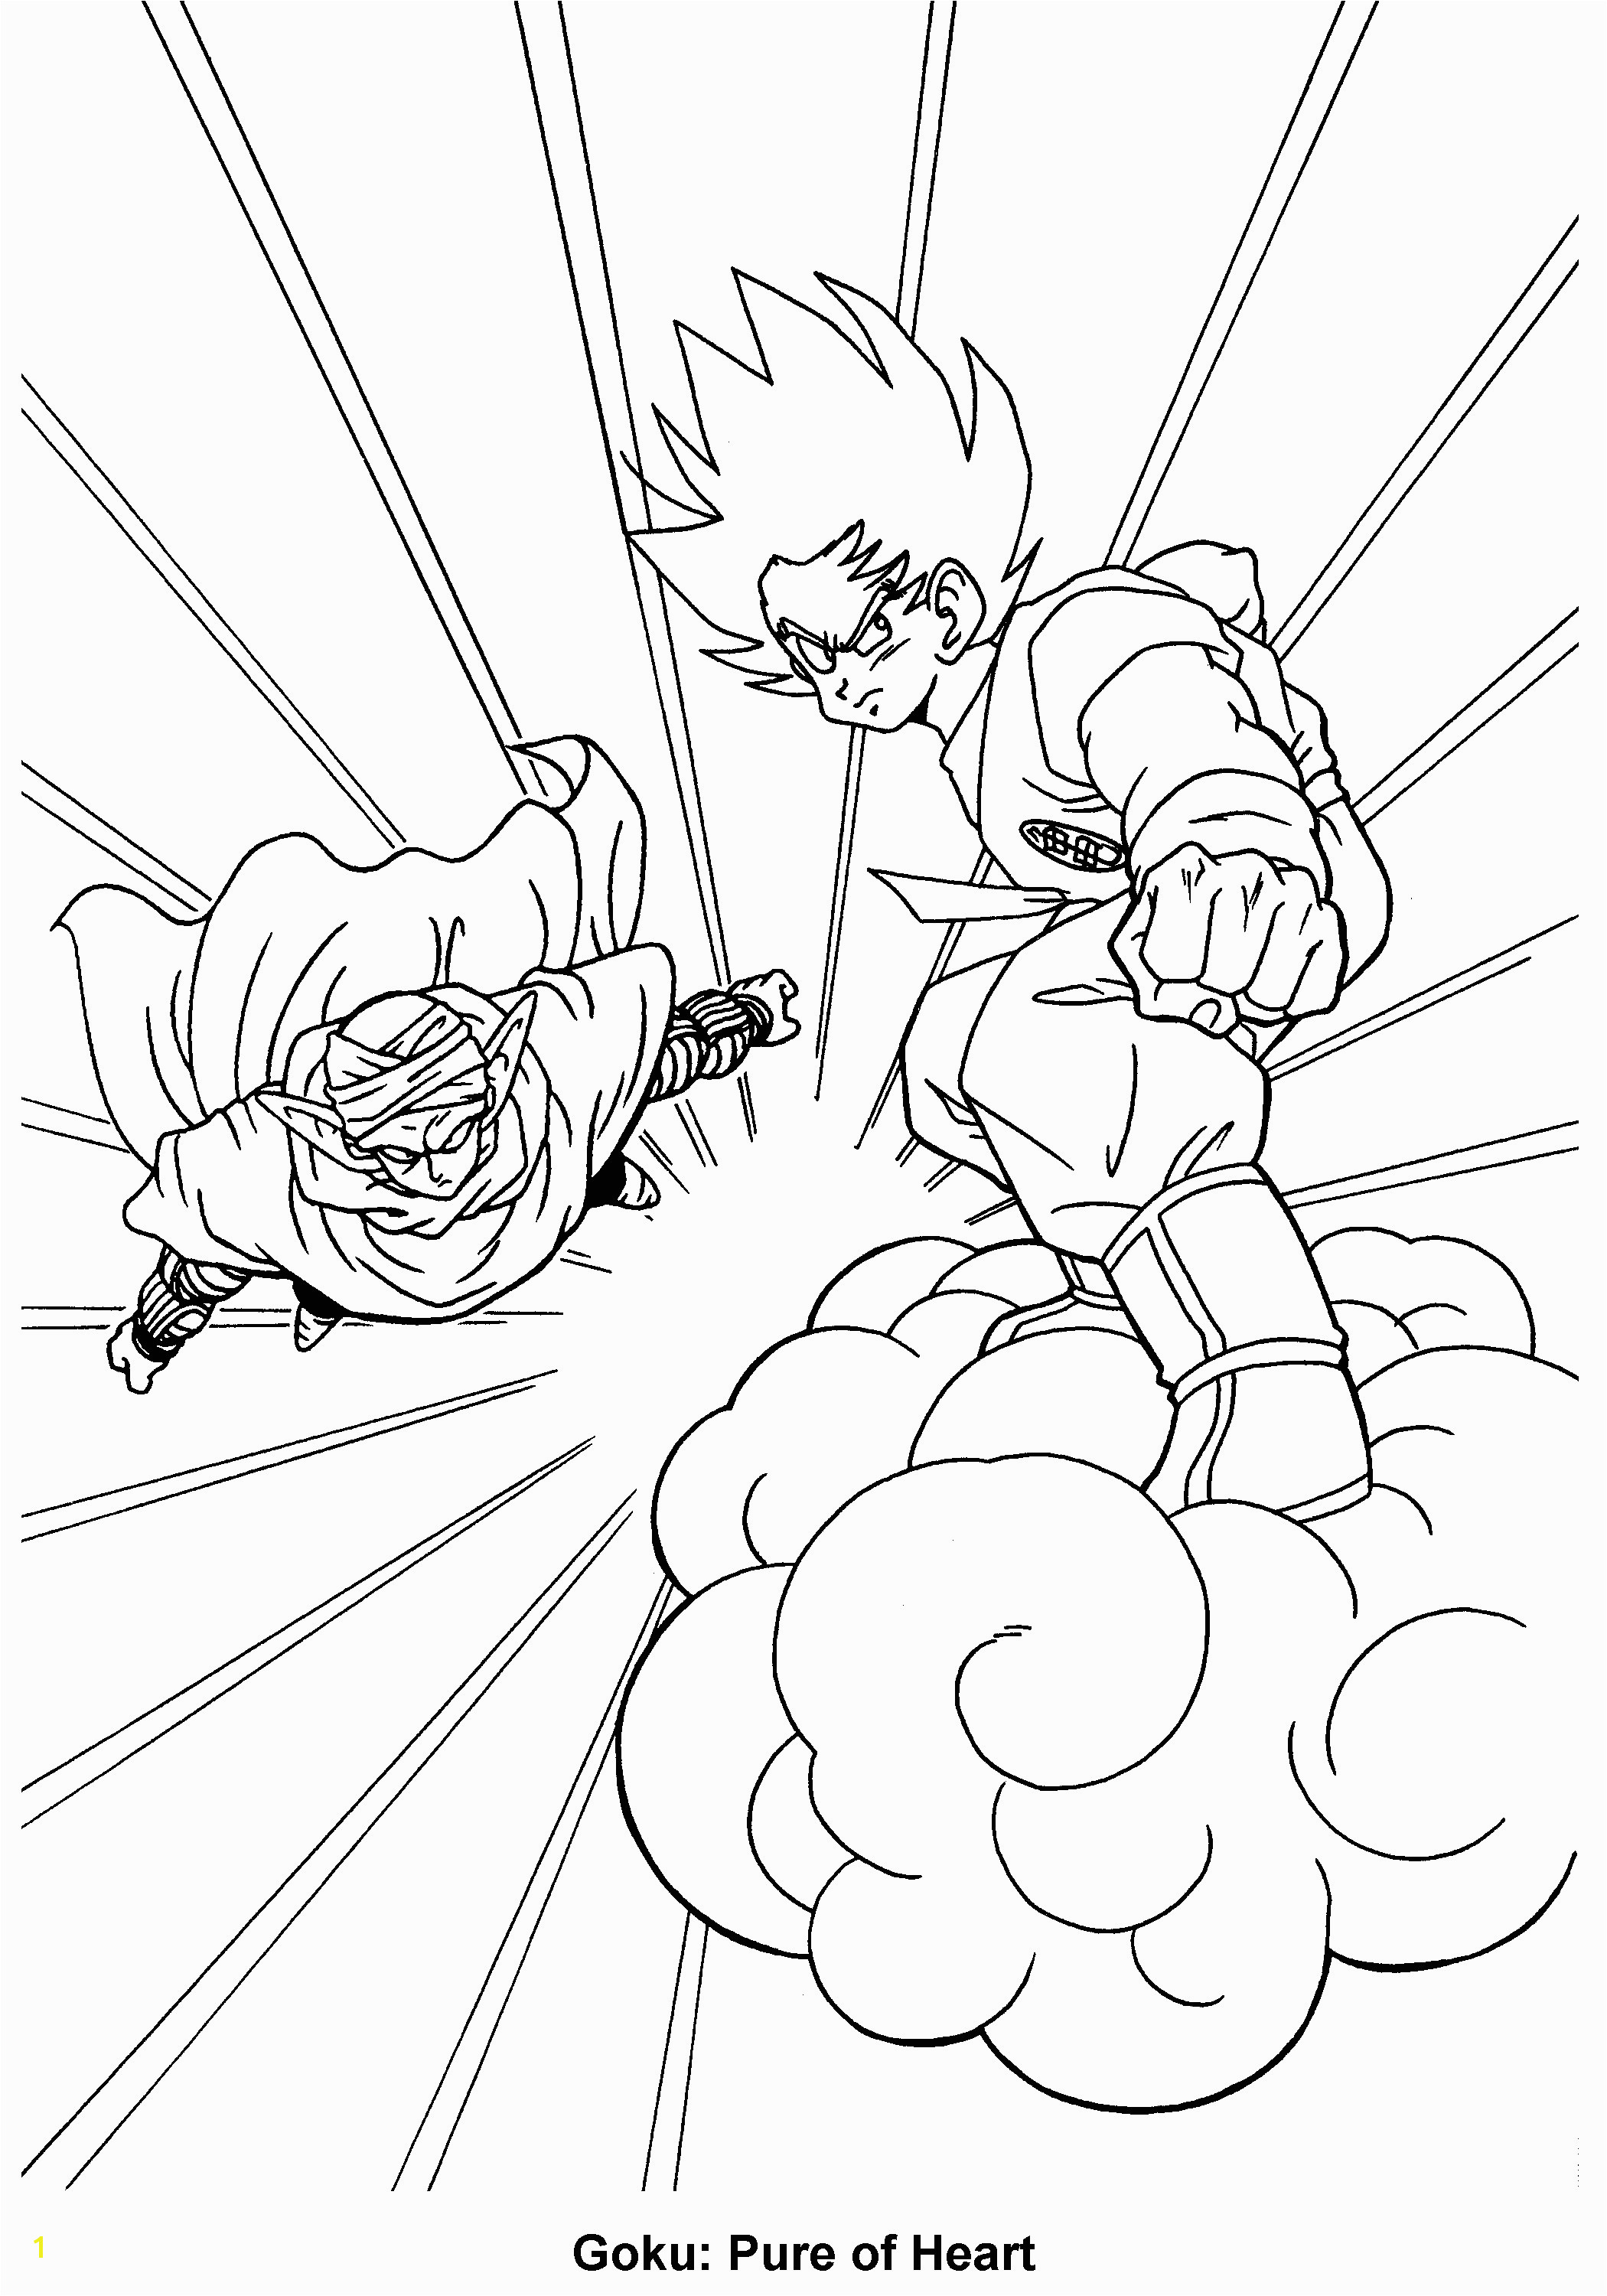 Dragon Ball Z Coloring Page Coloring Pages Epicness Schön Dragonball Ausmalbilder